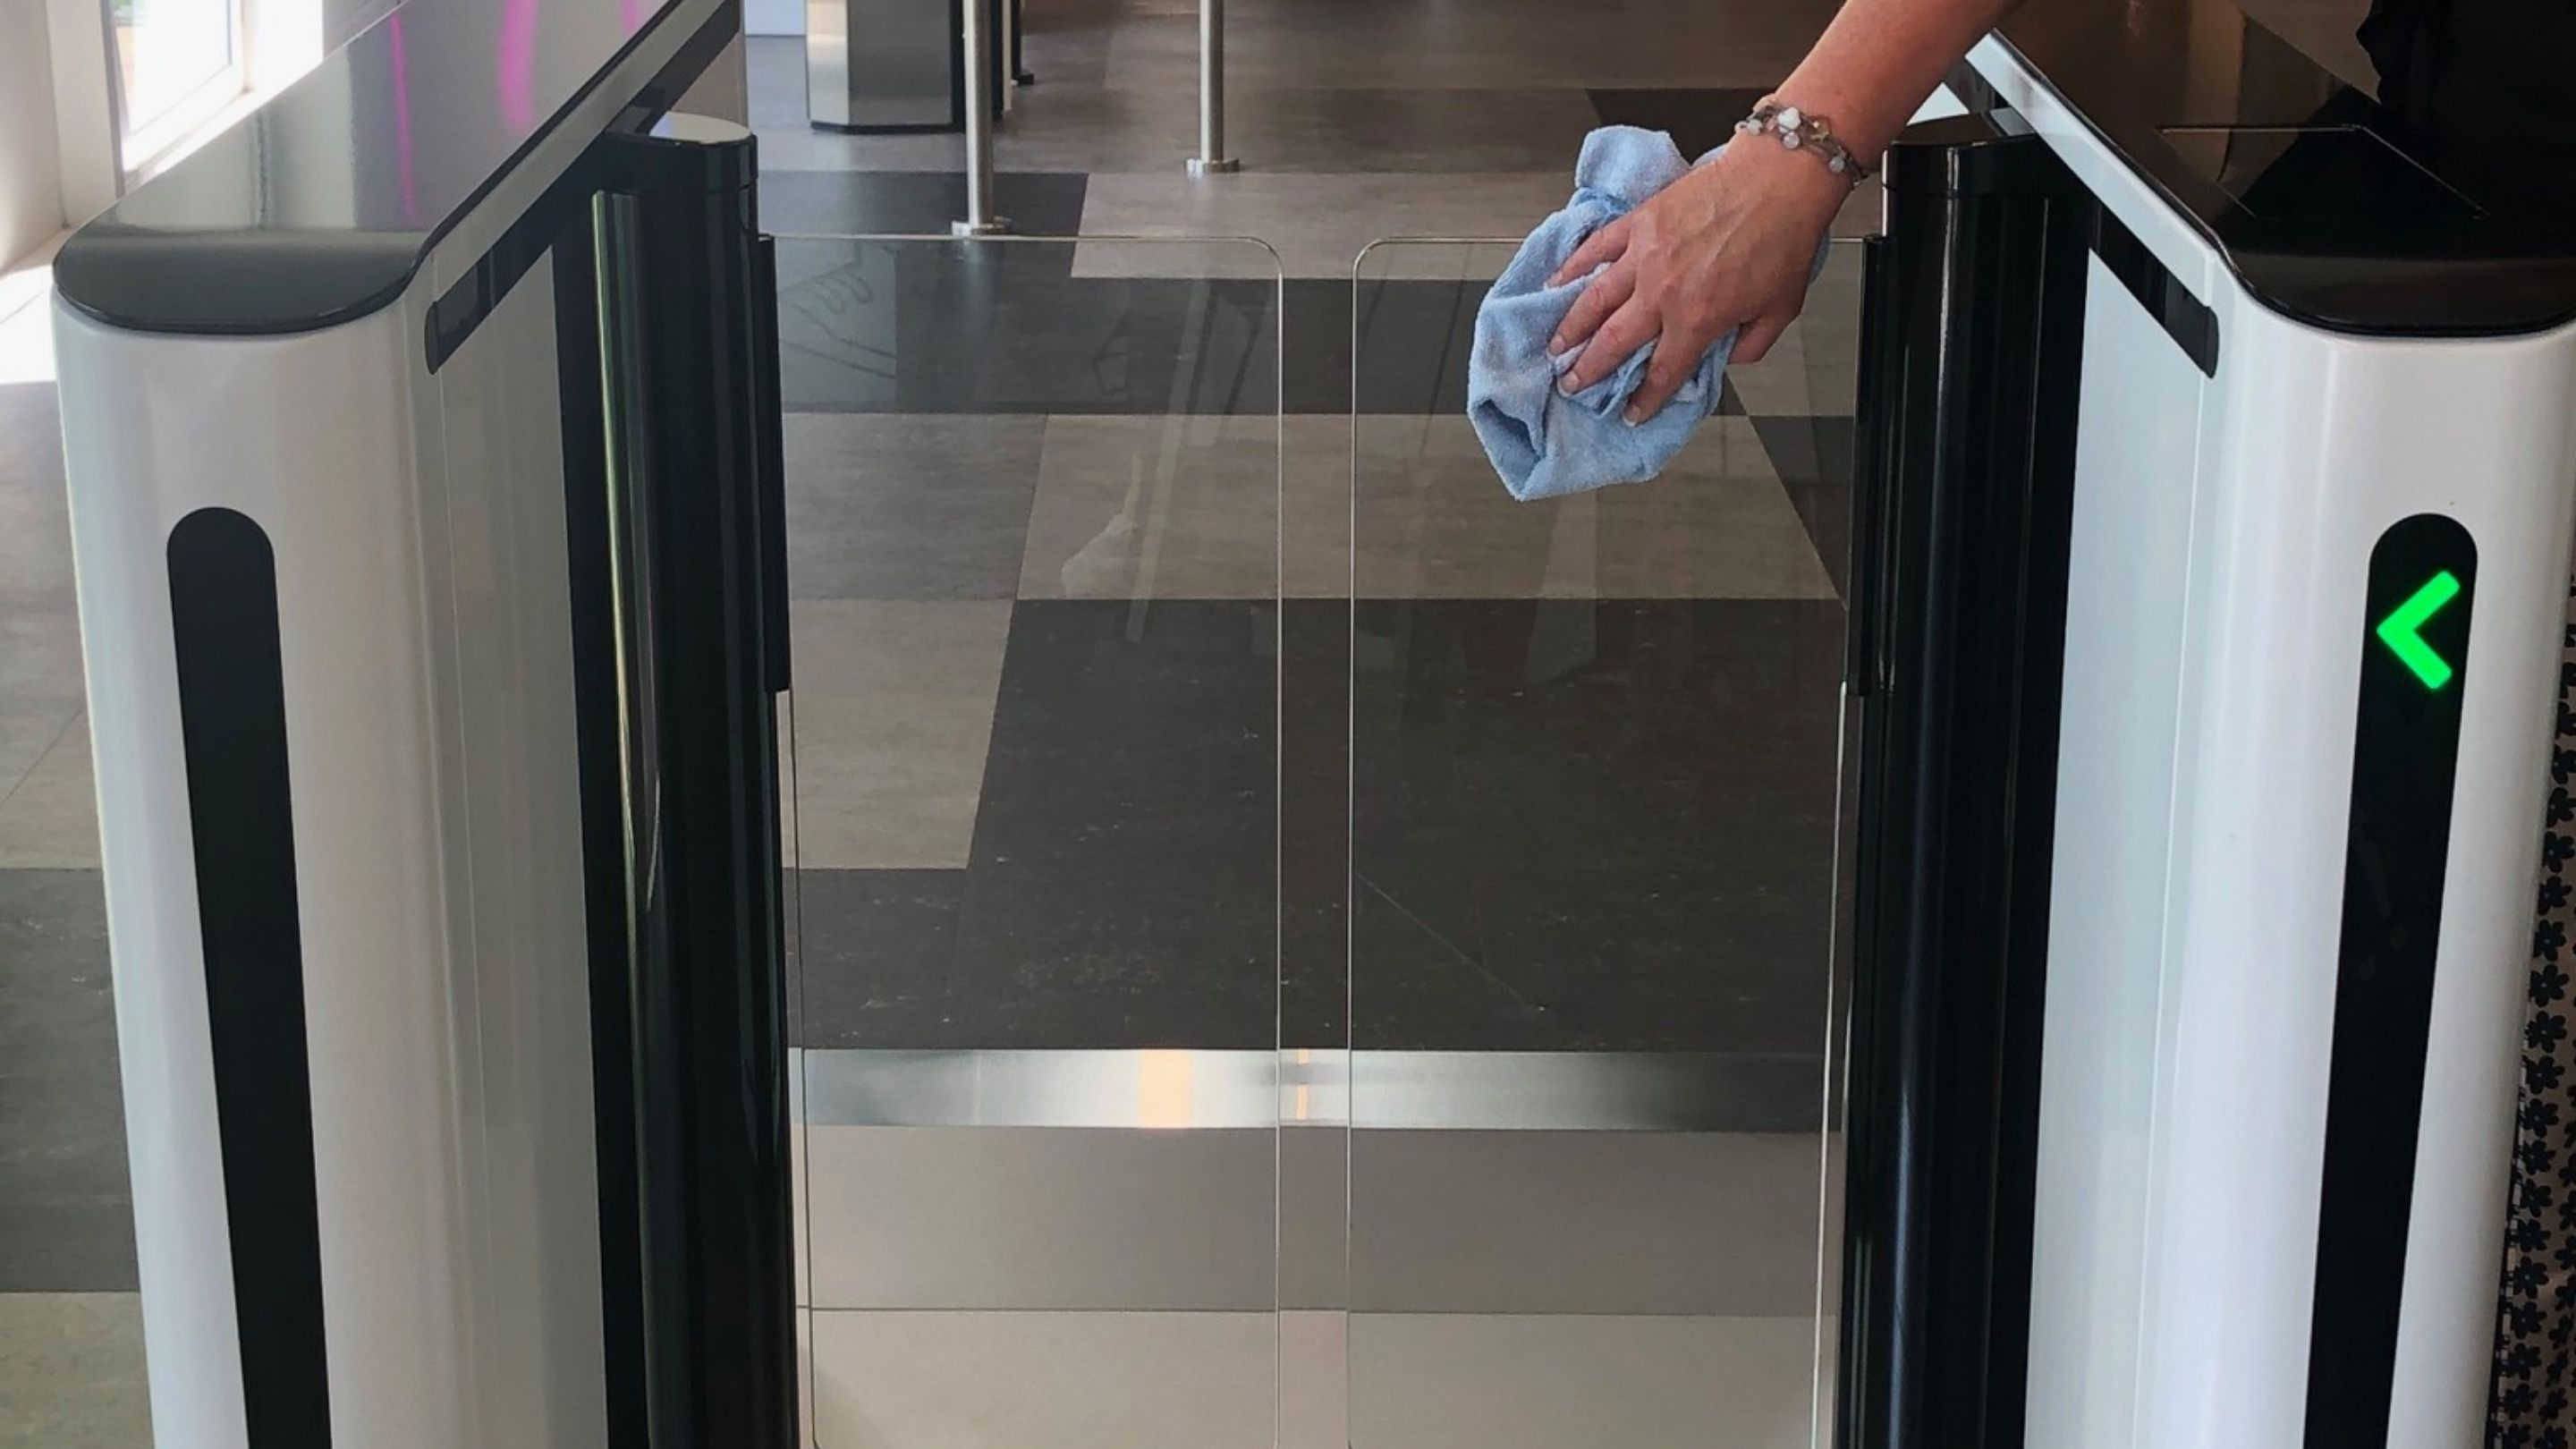 REVOLVING DOORS AND SECURITY ENTRANCES